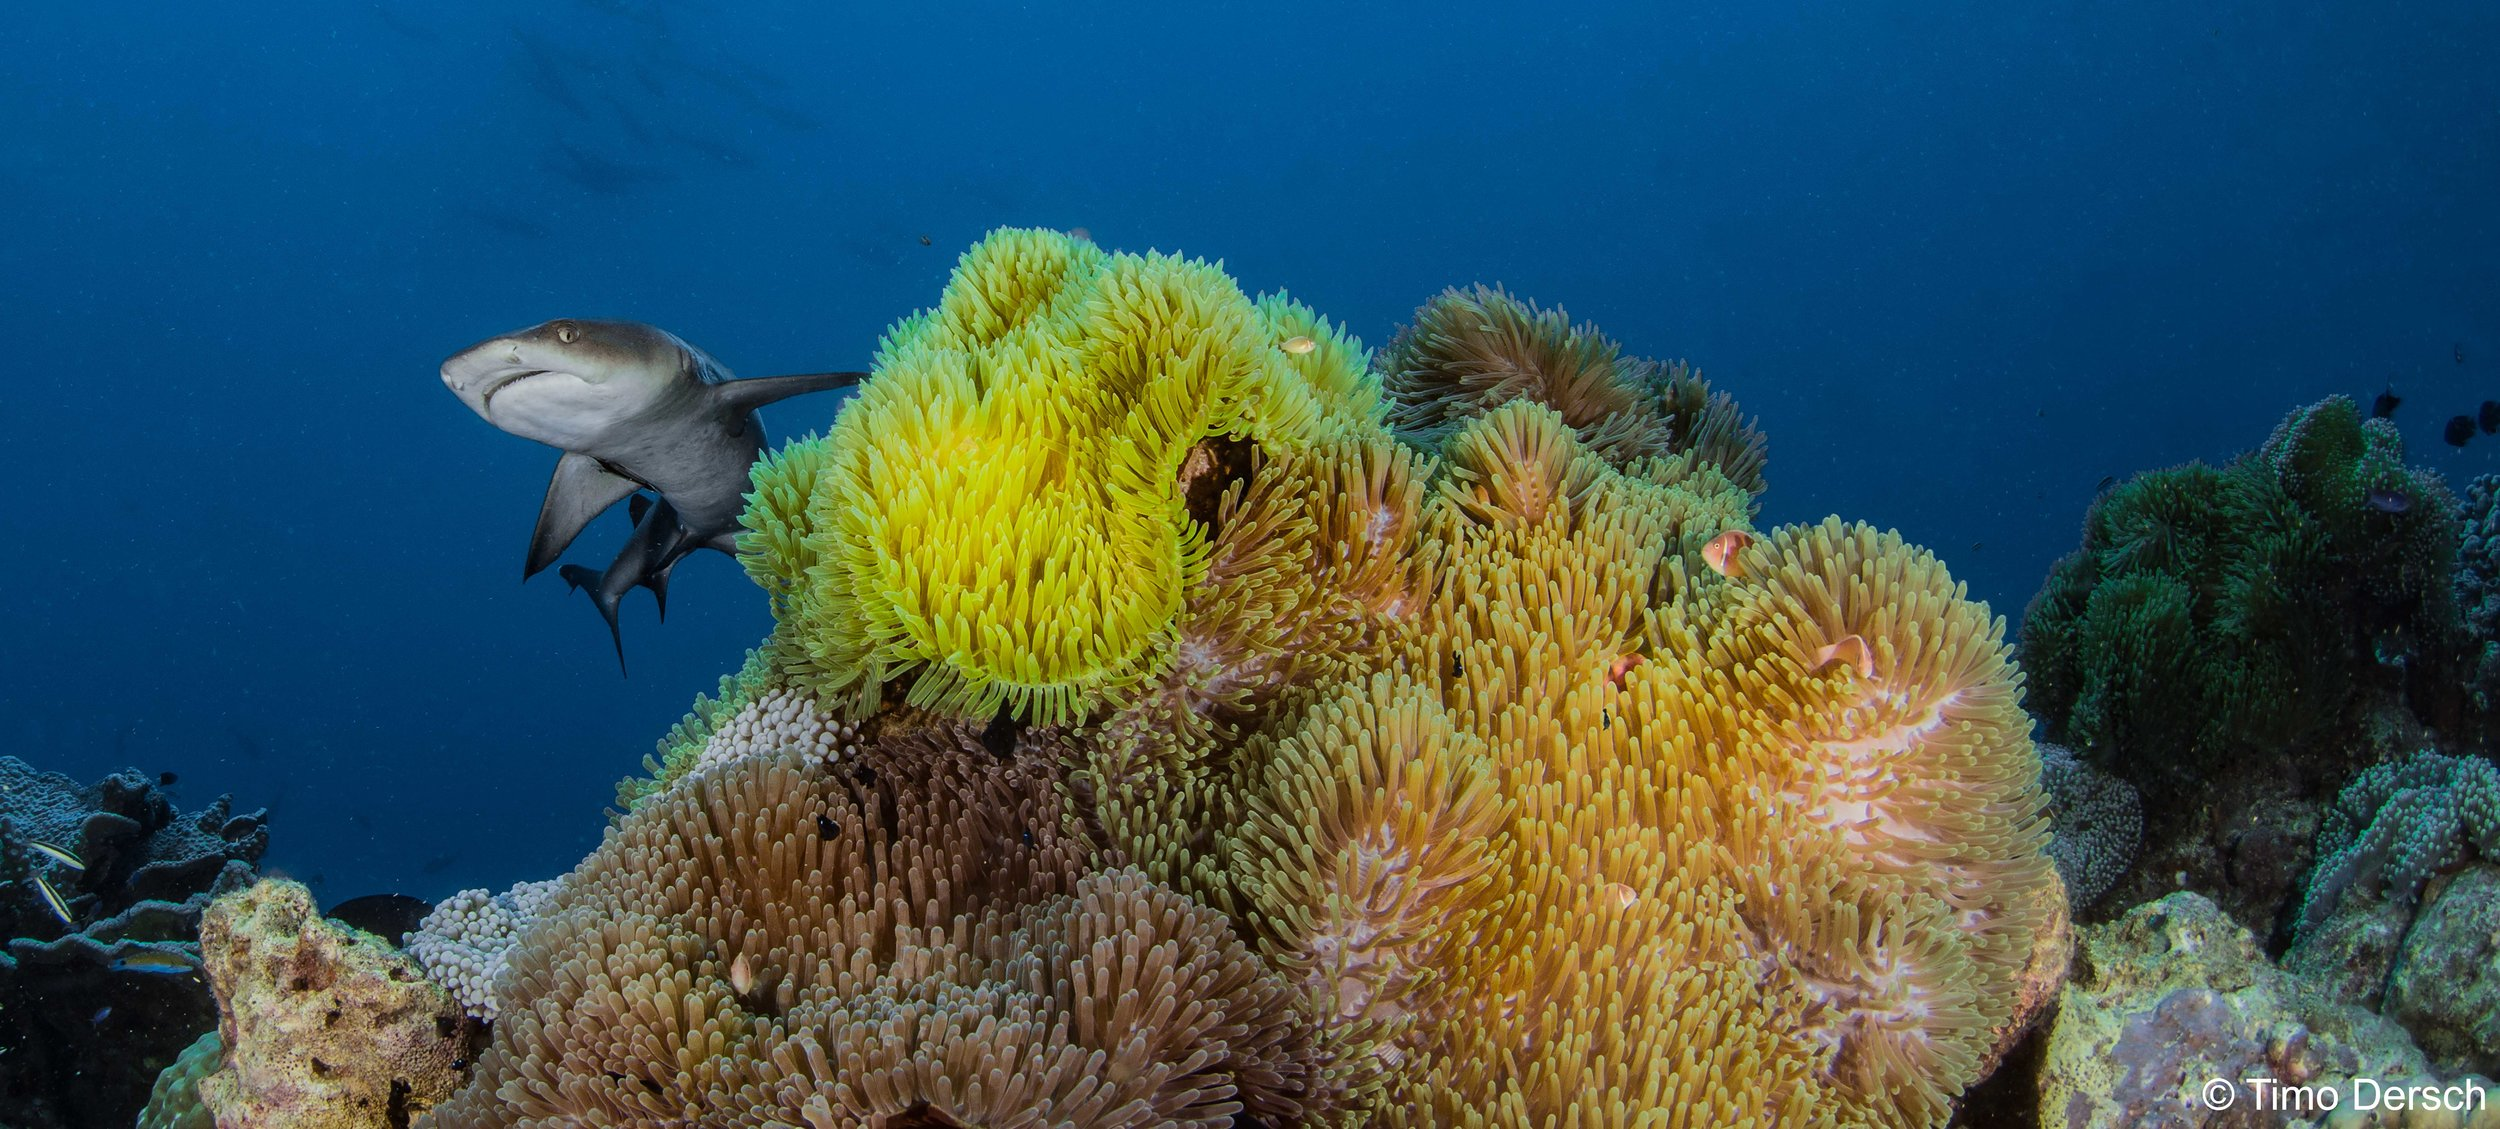 40% Off Selected Trips - To celebrate the launch of Oceania we are excited to be offering 40% off selected trips in 2019 so that you can join us to enjoy some of the worlds best diving on our new vessel.